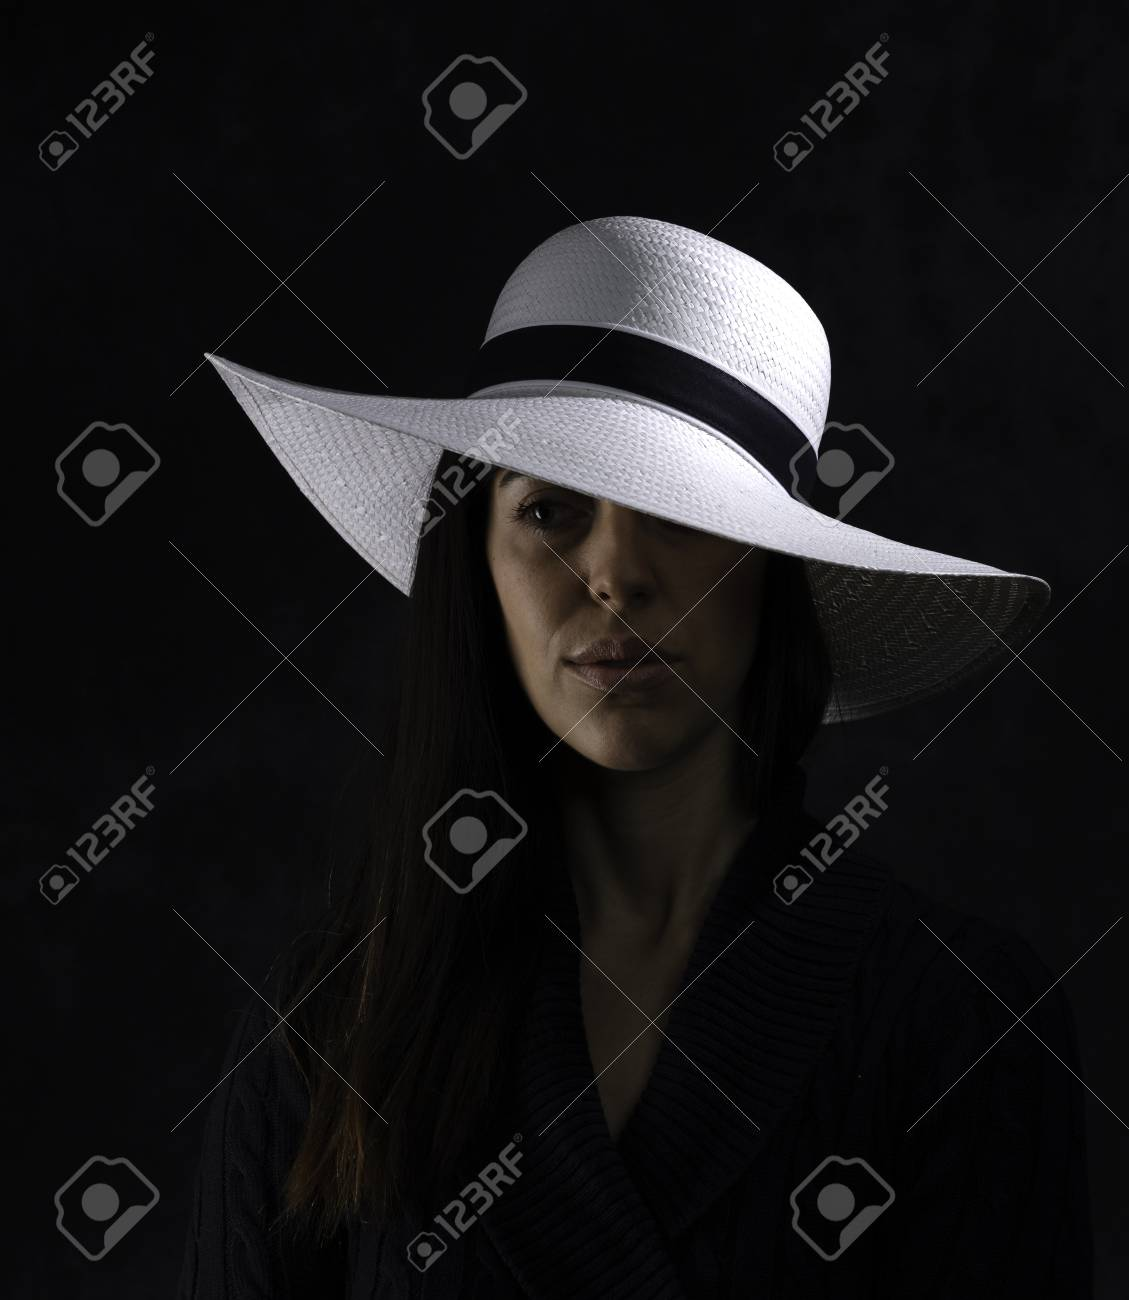 portrait of a beautiful young girl with a white hat on a black background, looking at her side - 126332863